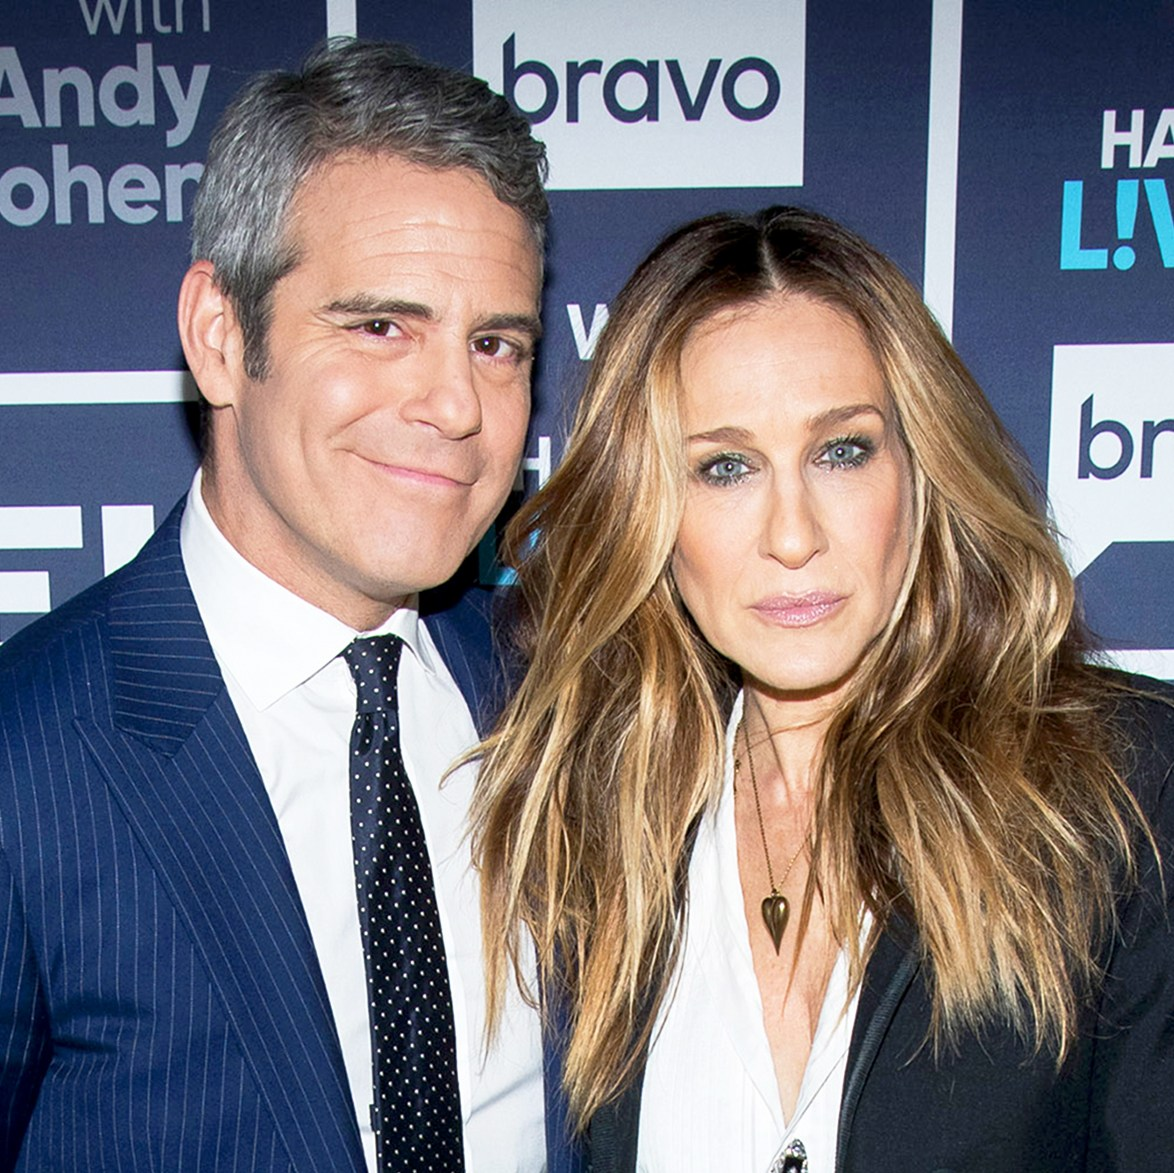 Andy Cohen and Sarah Jessica Parker on 'Watch What Happens Live'